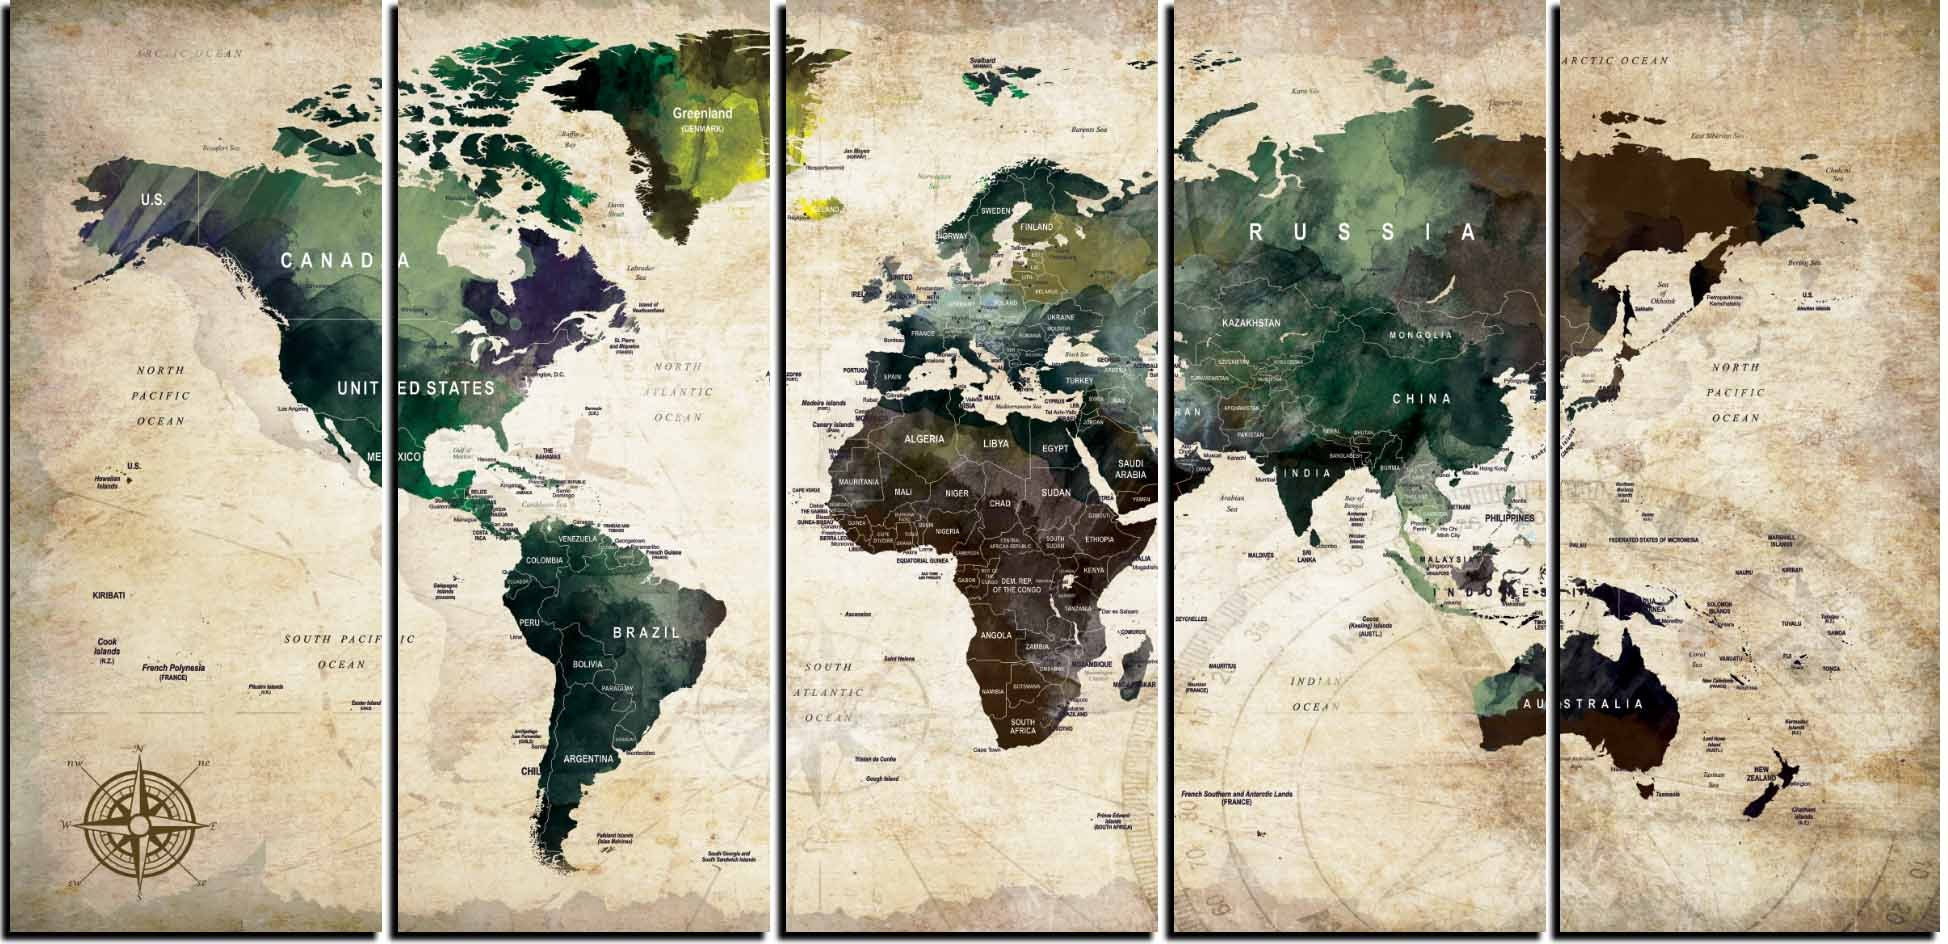 World mapworld map wall artworld map canvas artpush pin map gallery photo gallery photo gumiabroncs Gallery